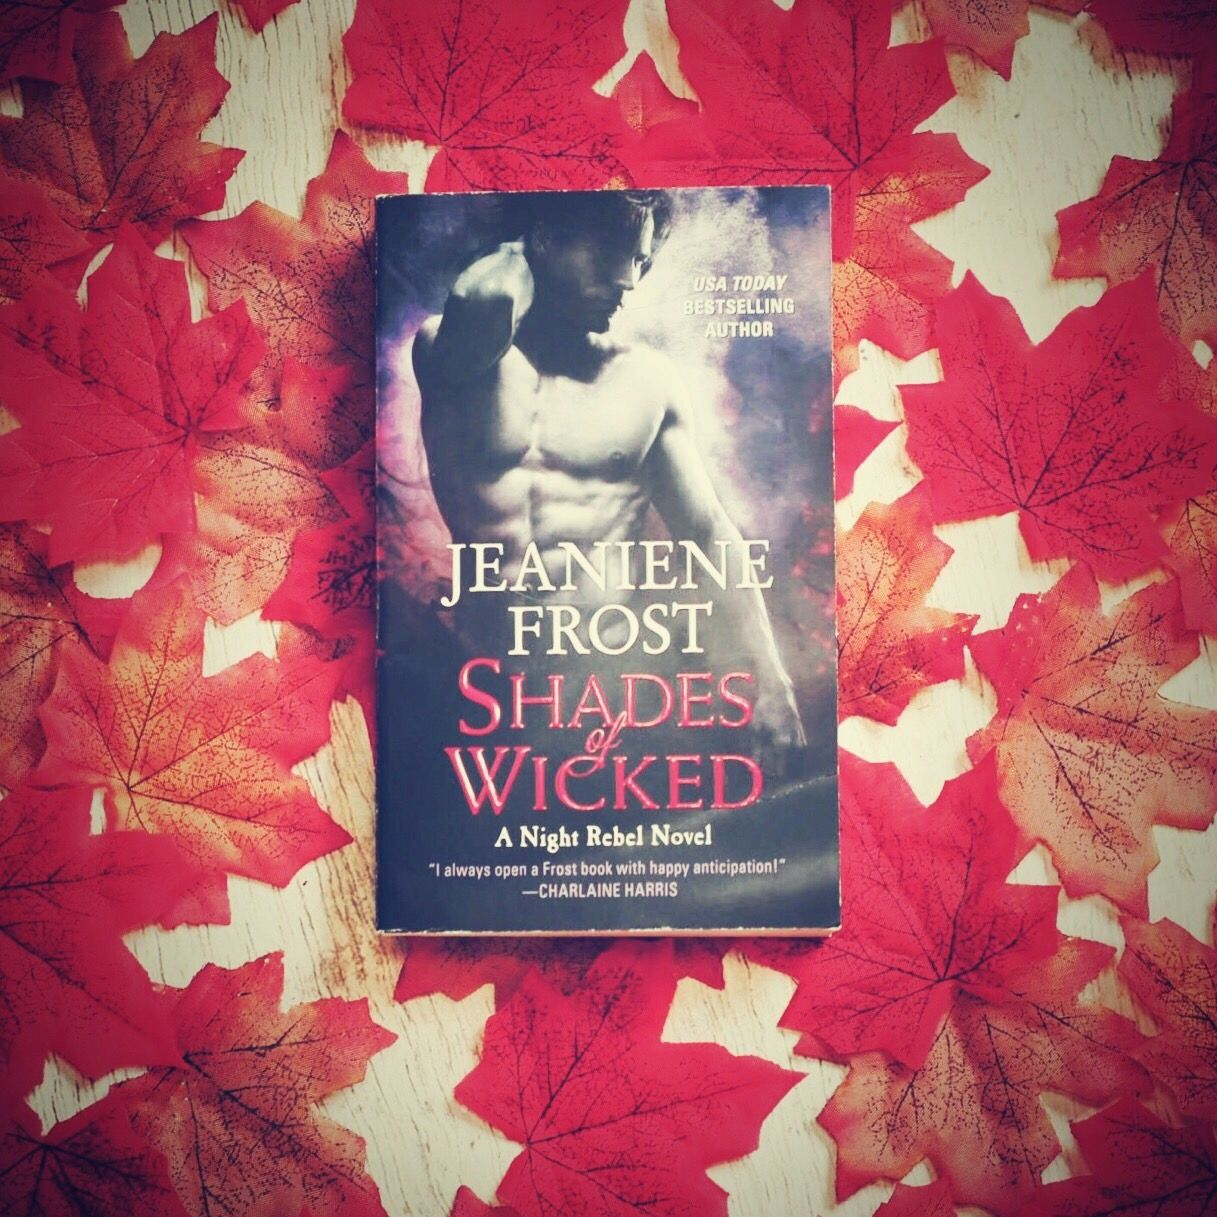 We're spending the week with SHADES OF WICKED by Jeaniene